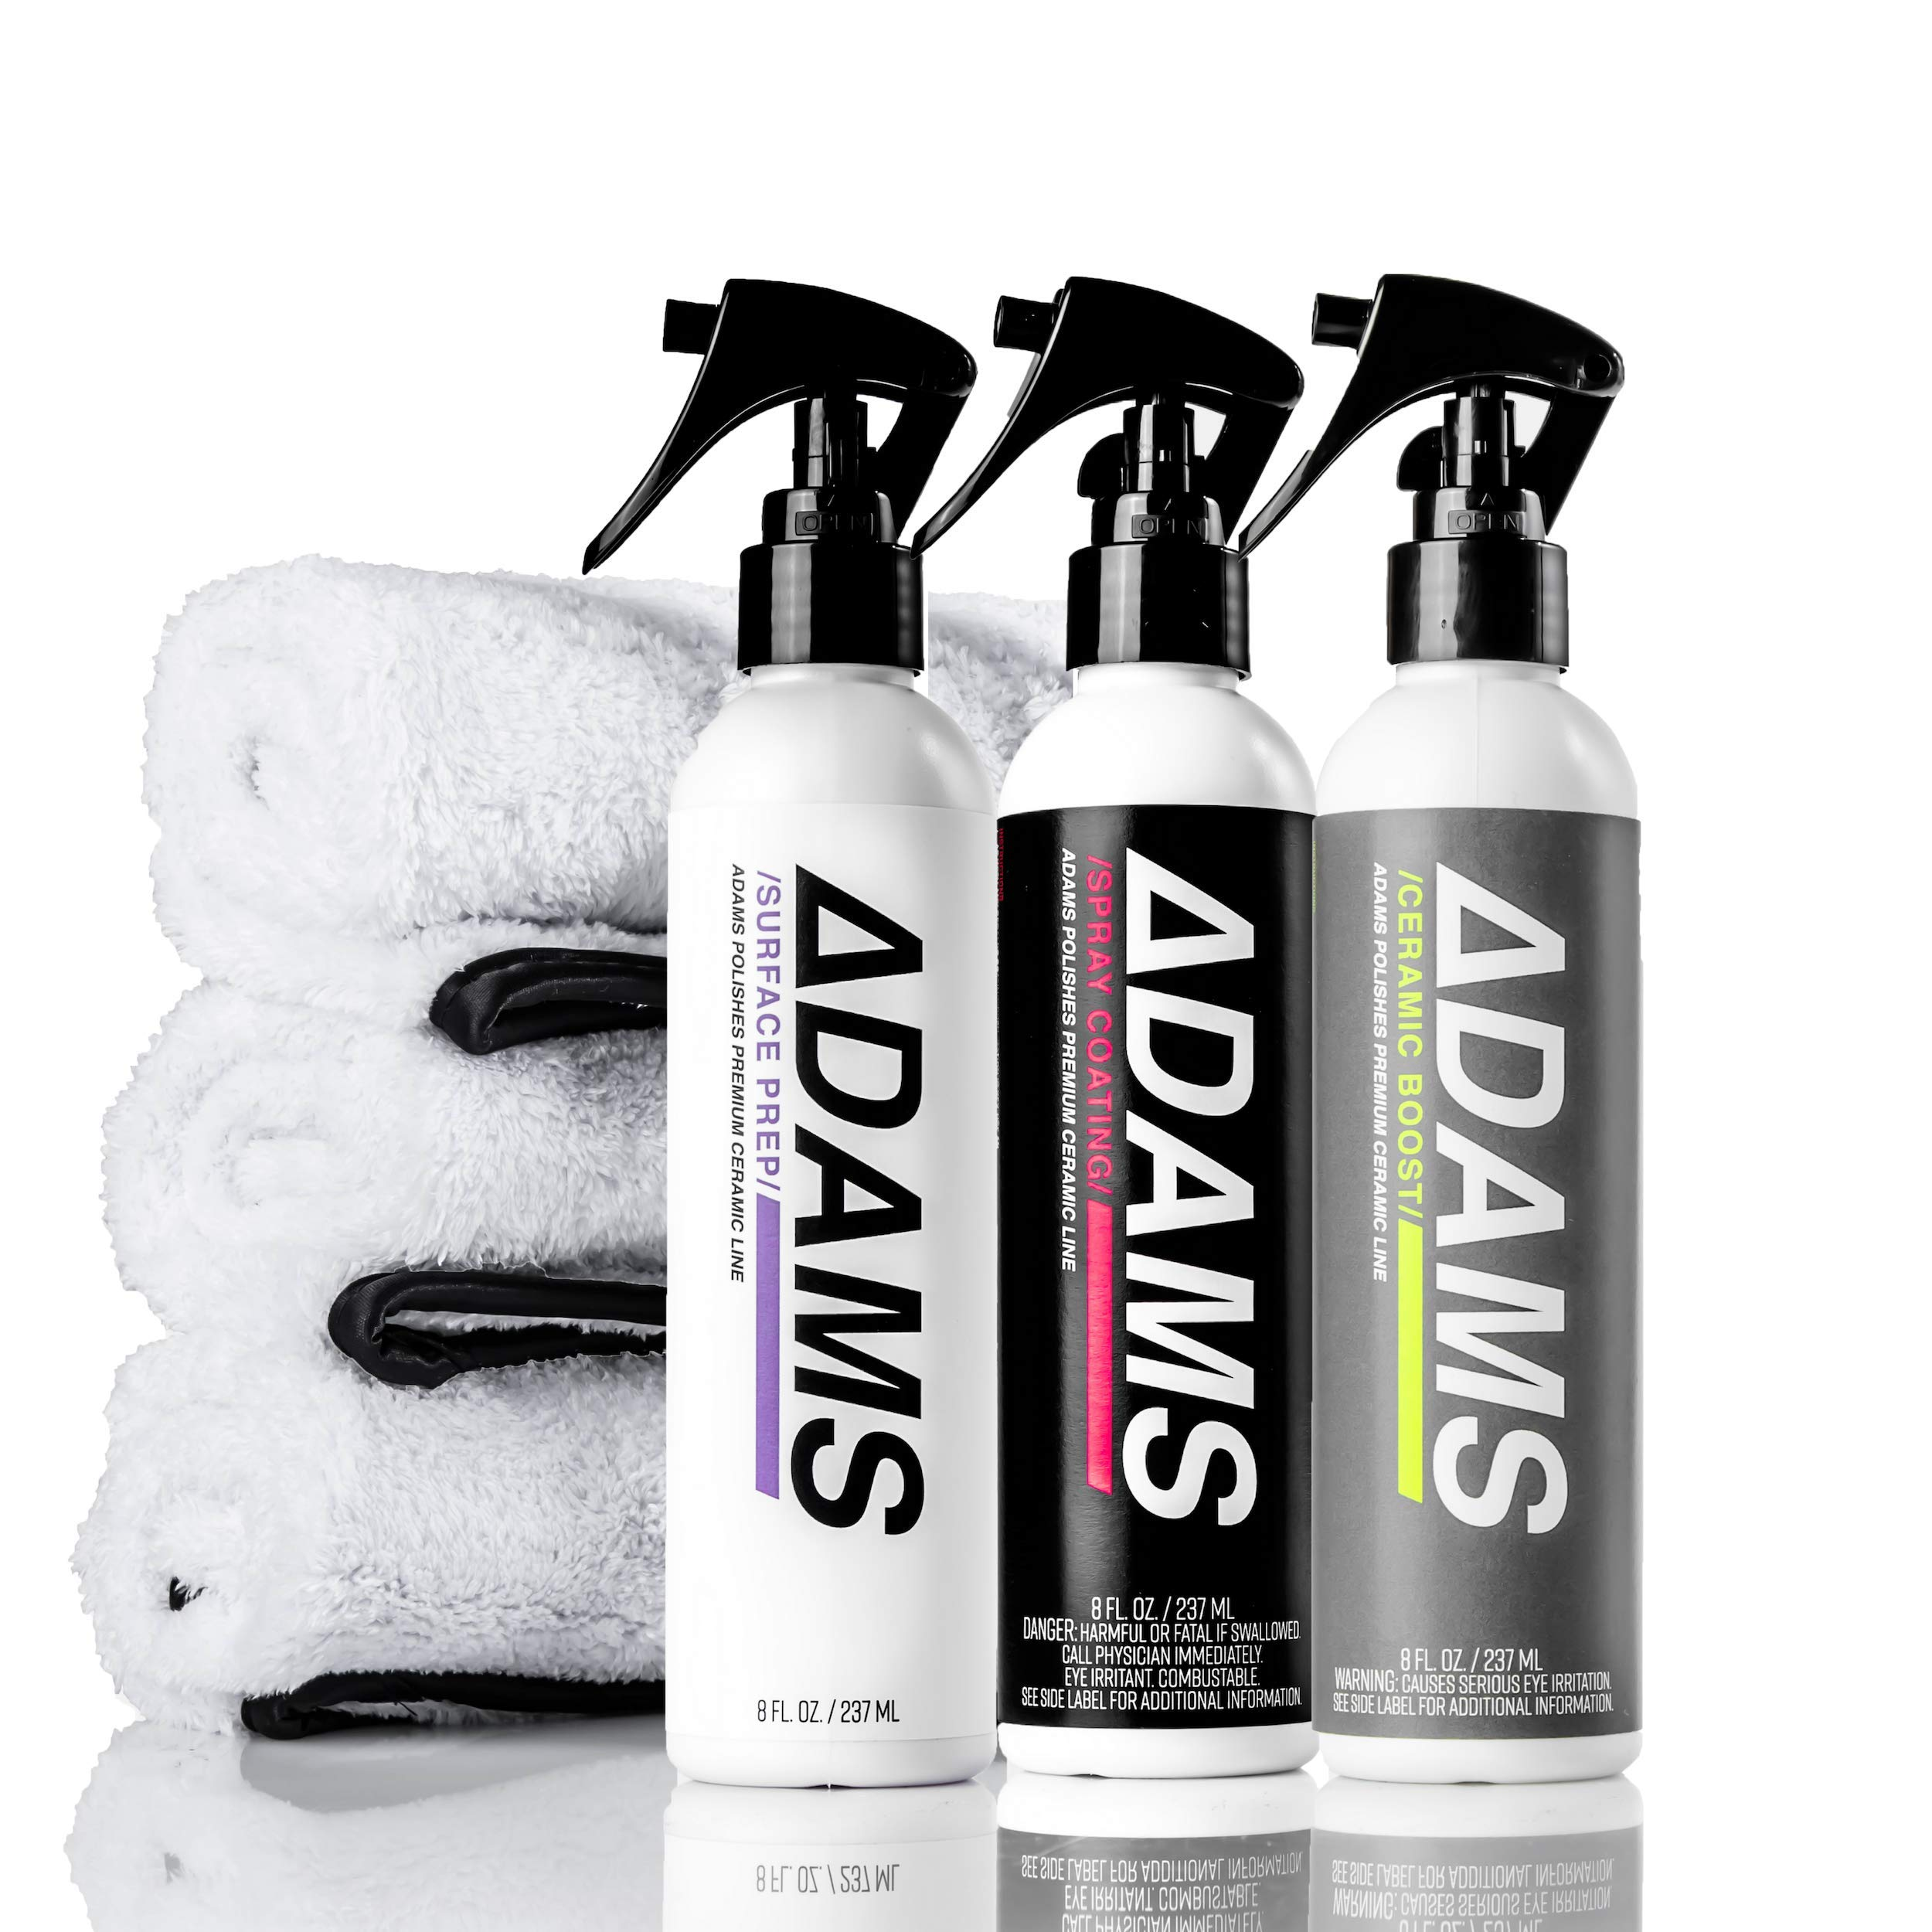 Adam's Ceramic Spray Coating 8 oz Complete Kit - A True Nano Ceramic Protection for Car, Boat & Motorcycle Paint - Top Coat Polish Sealant After Clay Bar, Polishing & Detail Car Wash (Complete Kit) by Adam's Polishes (Image #1)